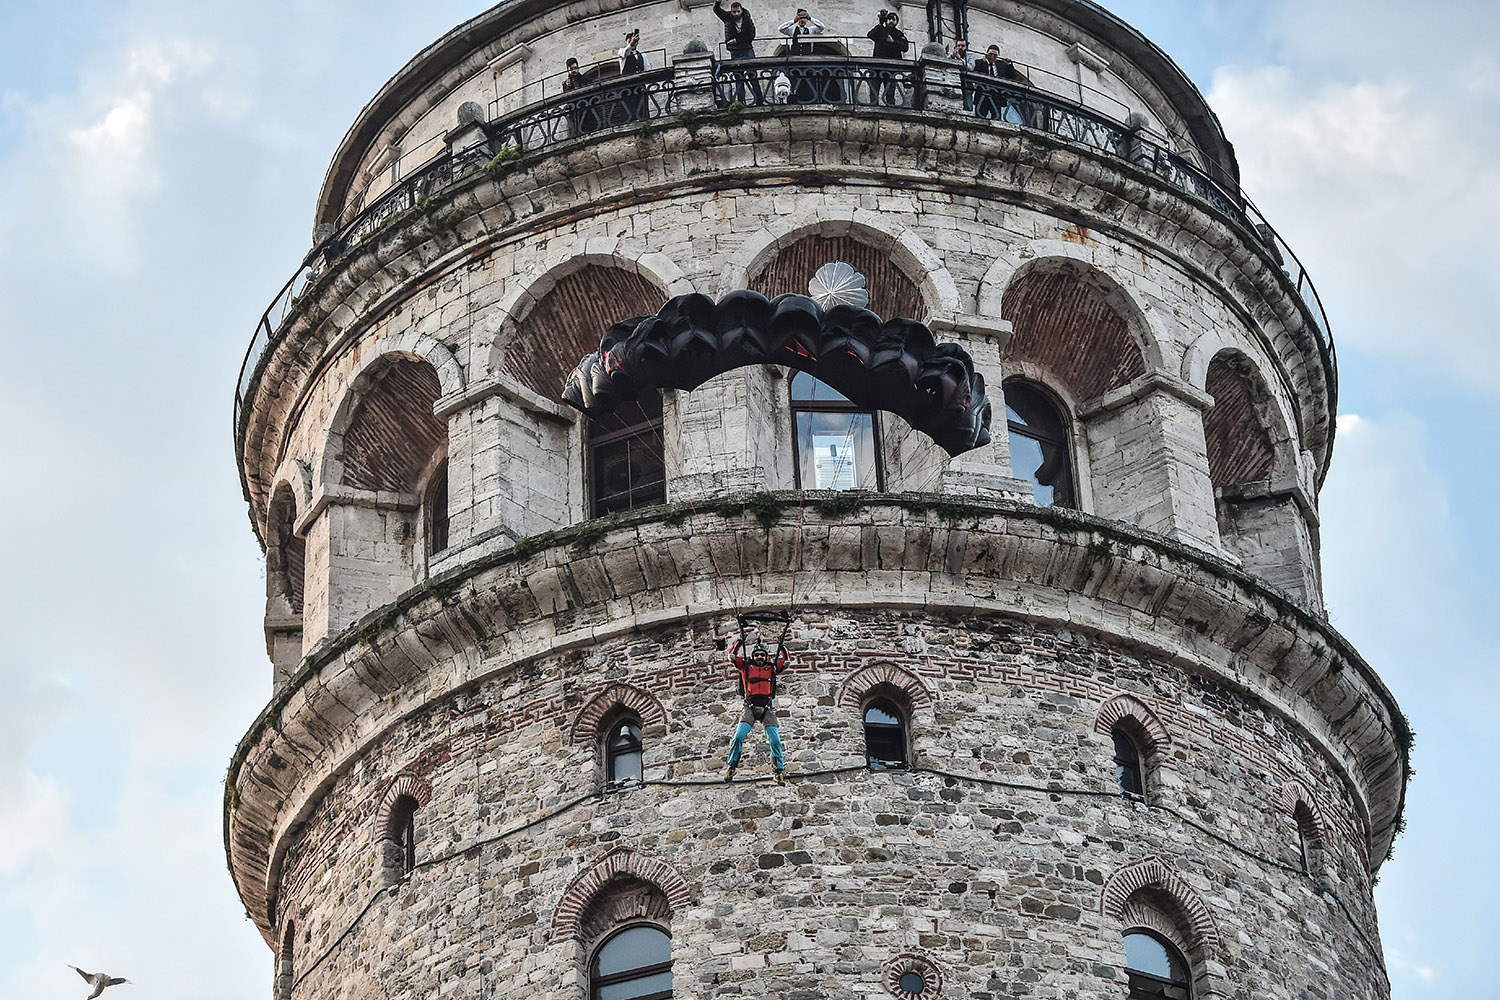 Turkish extreme sports athlete Cengiz Kocak performs a base jump off Galata Tower in Istanbul on Nov. 2017, as part of the events organized by European Outdoor Film Tour (EOFT) in Istanbul. Ozan Kose/AFP/Getty Images